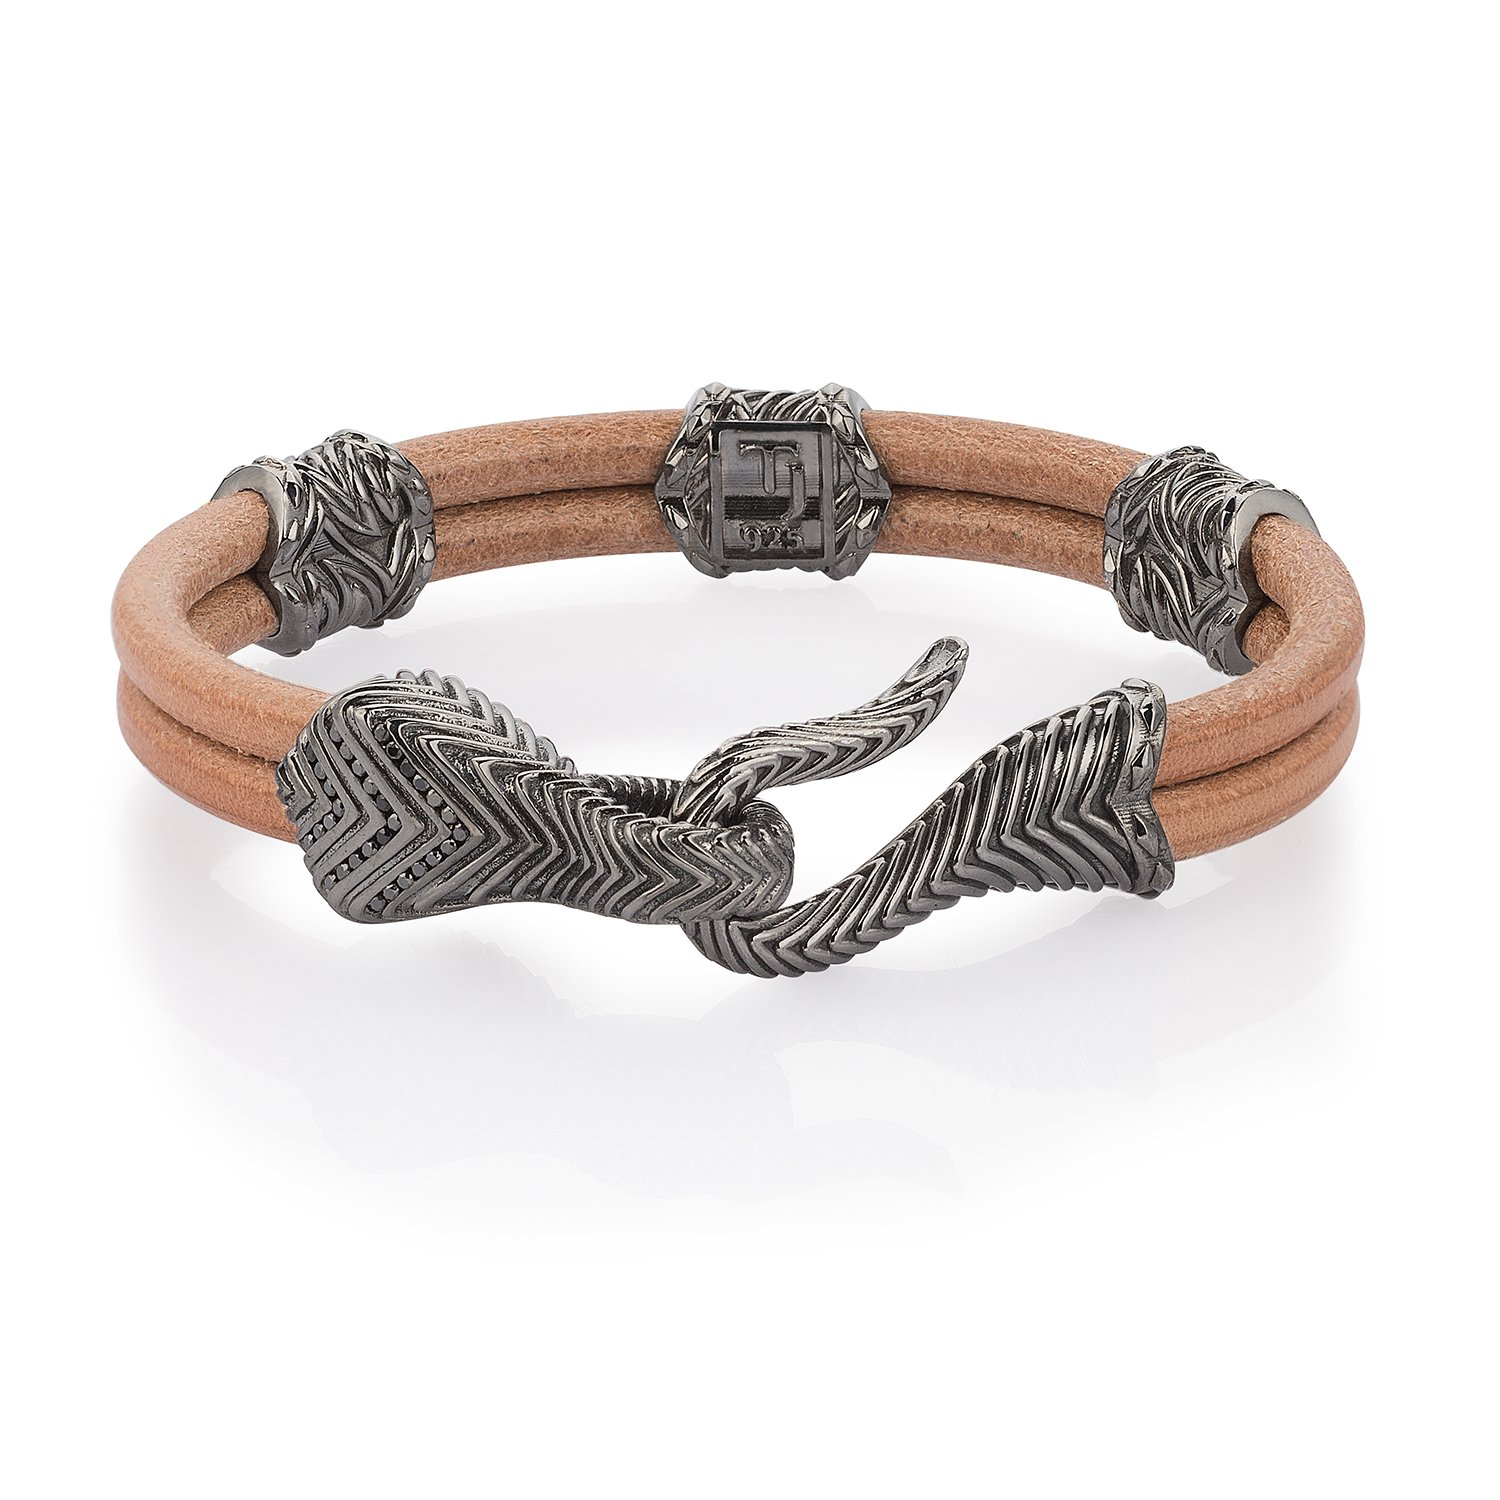 Beige Natural Leather Serpi Bracelet in 18K Gold with Black Diamonds